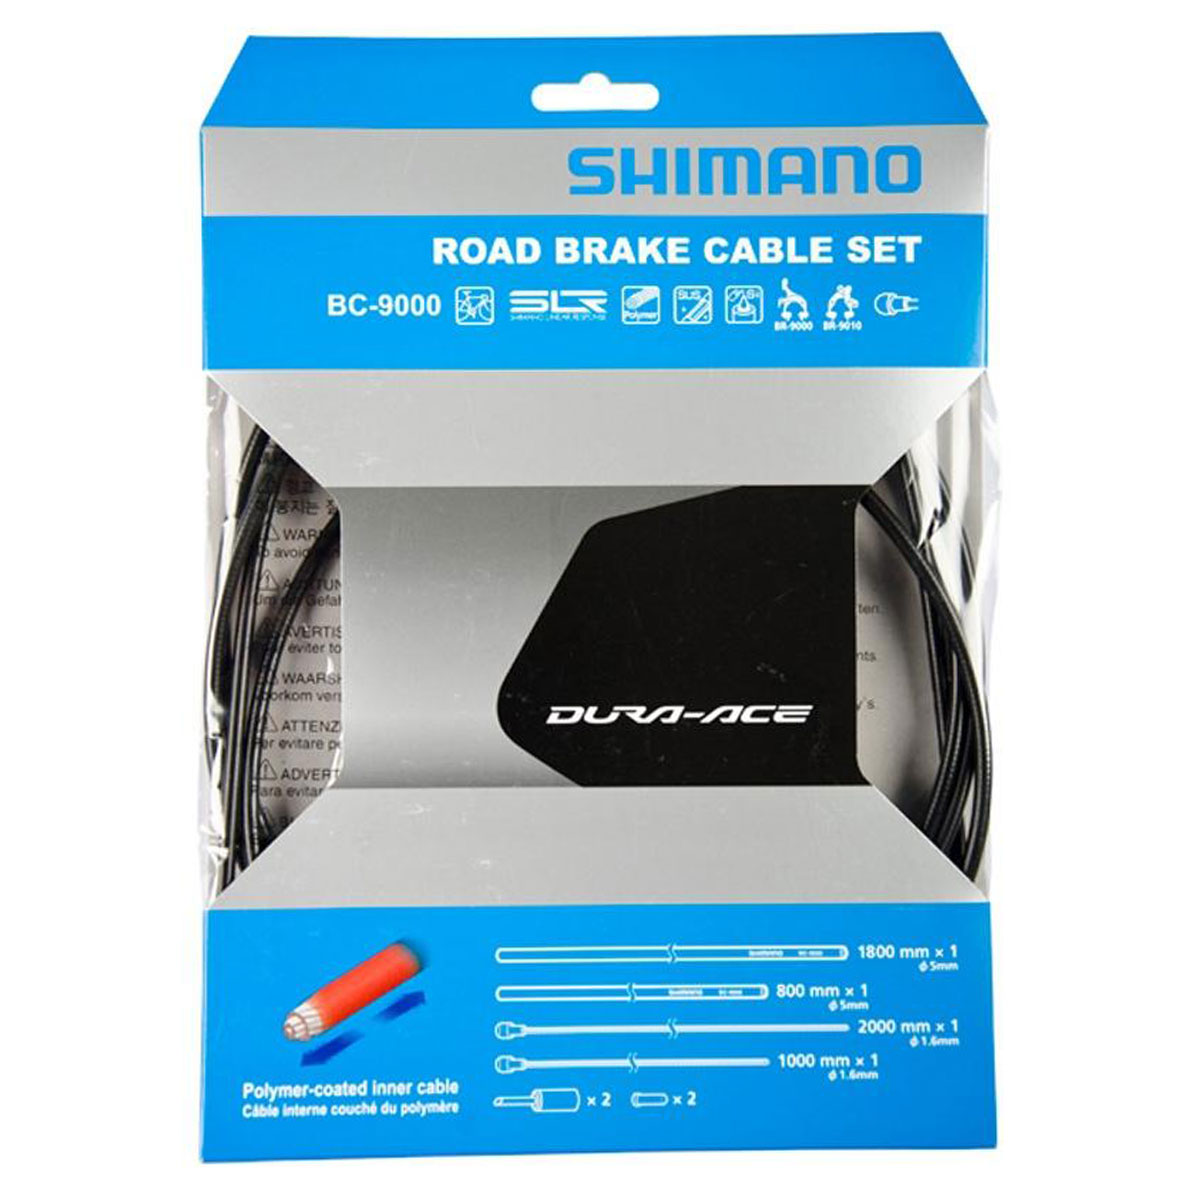 ENSEMBLE CABLE/GAINE FREIN SHIMANO DURA-ACE 9000 - POLYMER COATED - NOIR